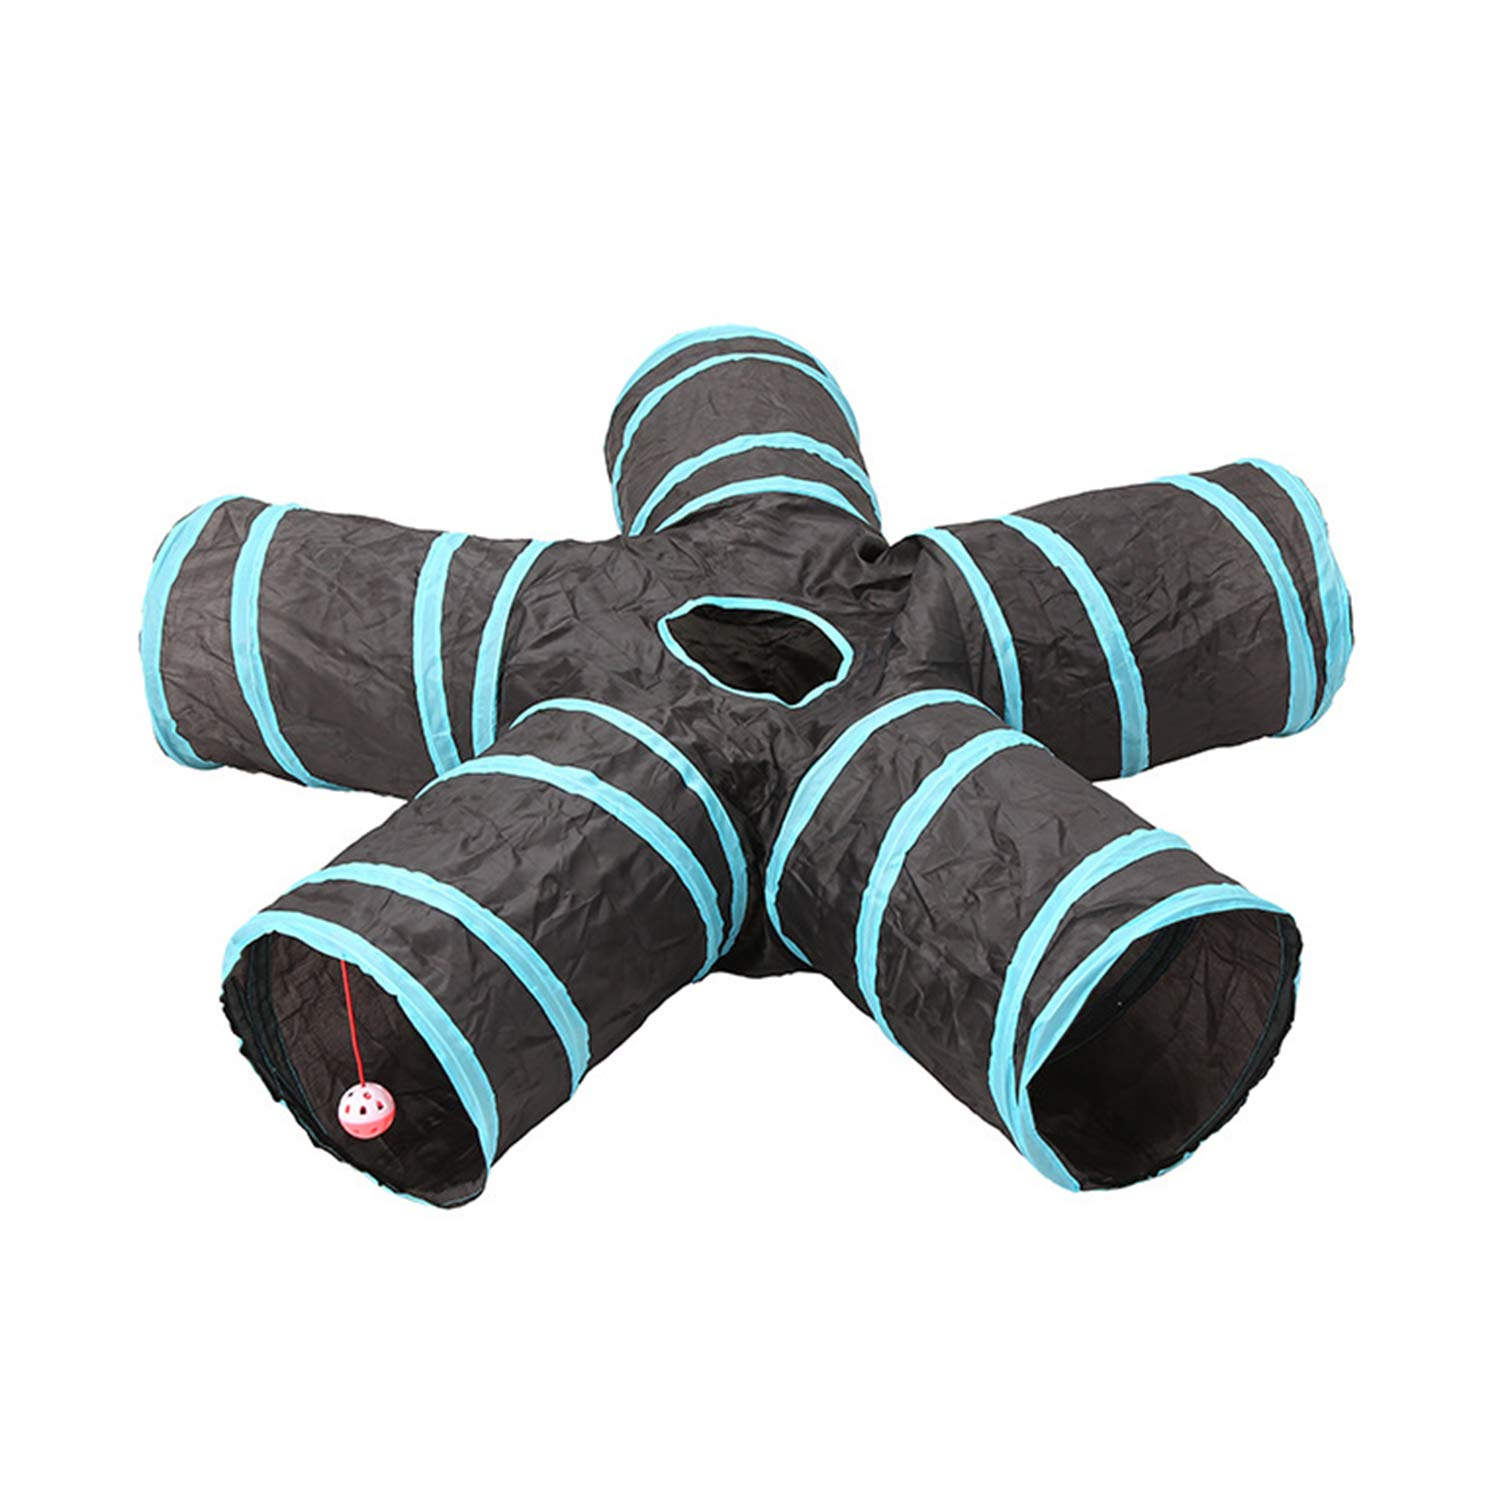 CLAIQY Cat Tunnel Toy,Cat Toy 5-Way Collapsible Pet Game Tunnel Tube for Cats, Puppies, Rabbits, Guinea Pigs by CLAIQY